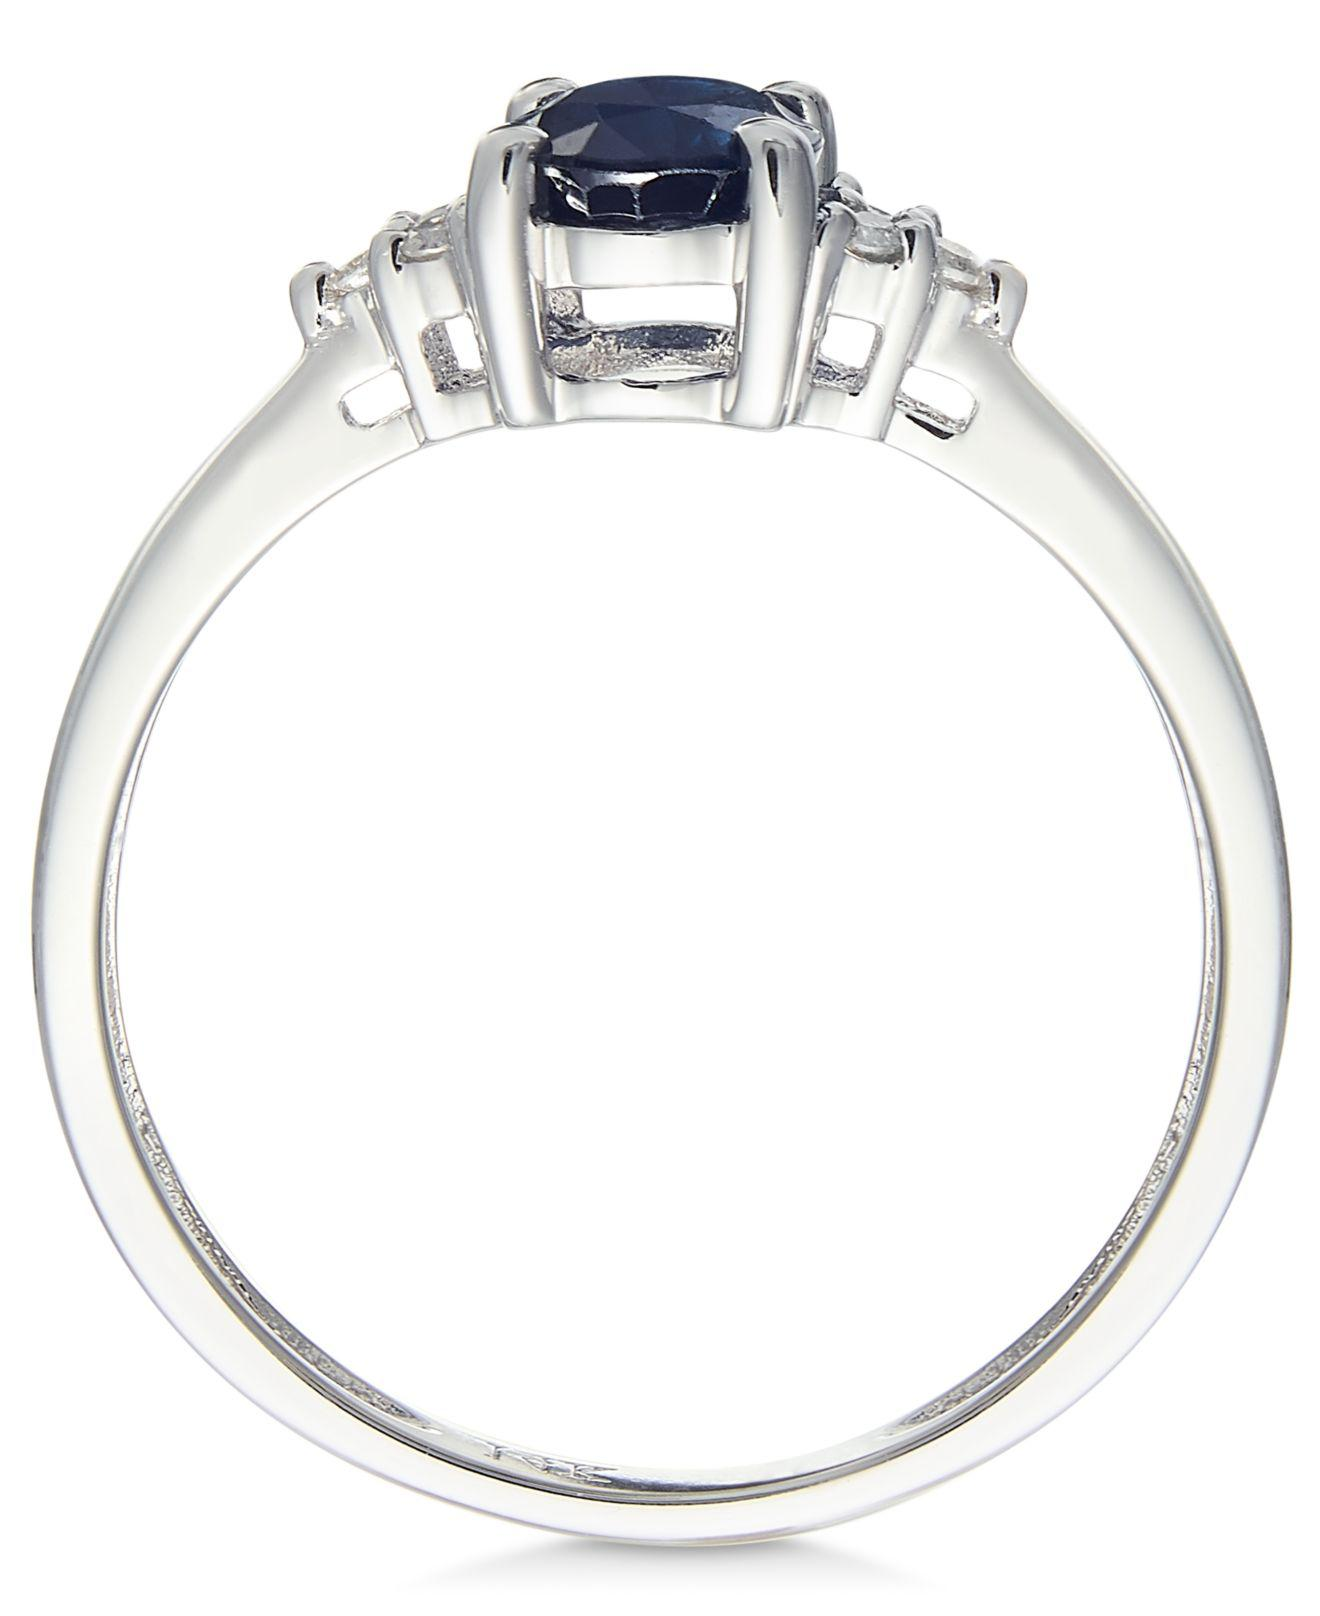 2ad149460f8e Lyst - Macy'S Sapphire (9/10 Ct. T.w.) And Diamond Accent Ring In 14k White  Gold in Blue